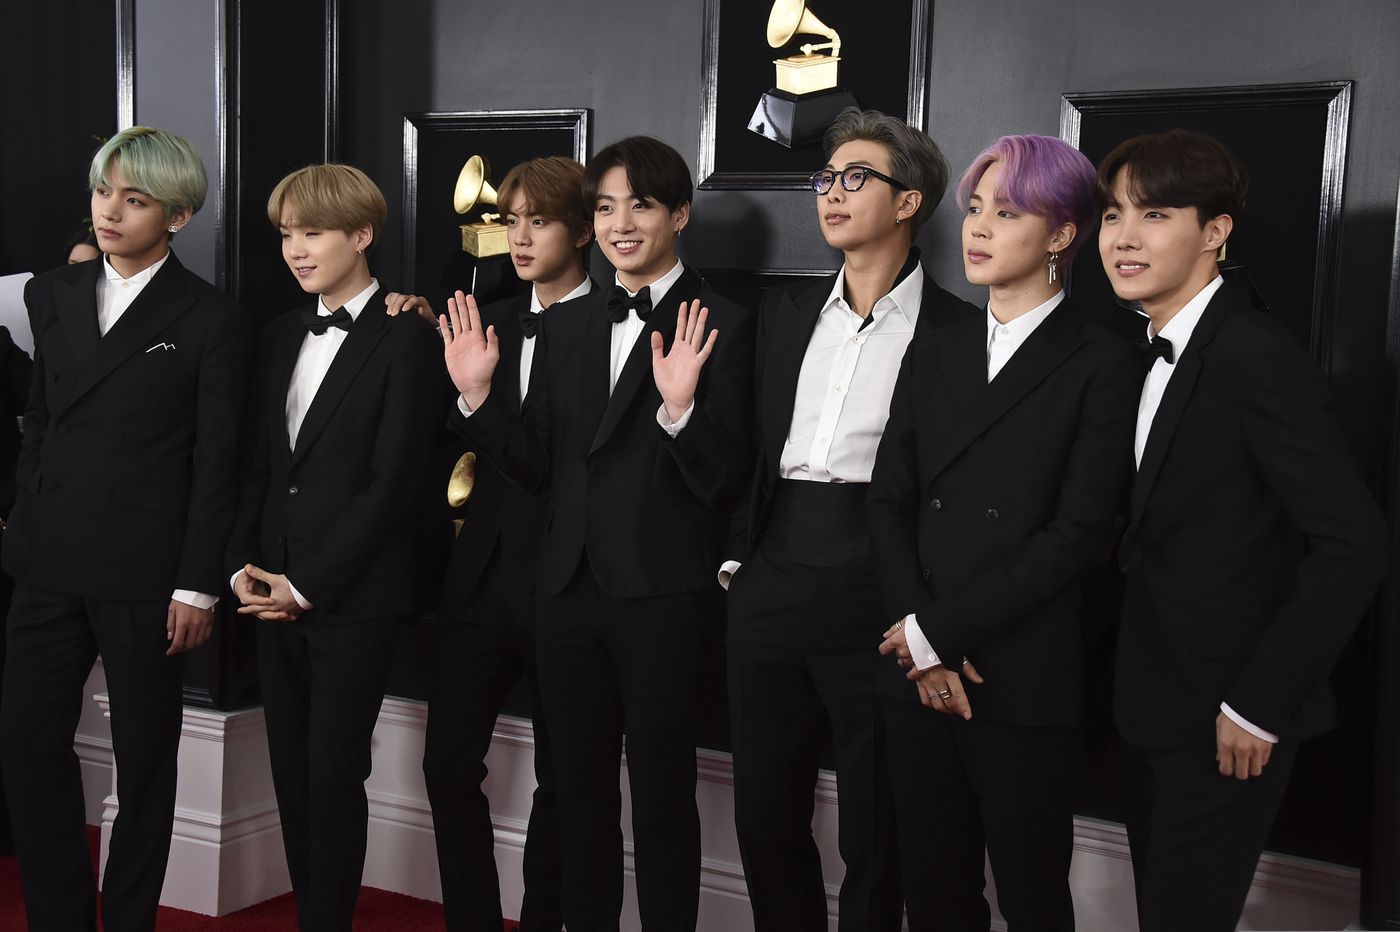 BTS's 'Map of the Soul: Persona' is their tightest album yet